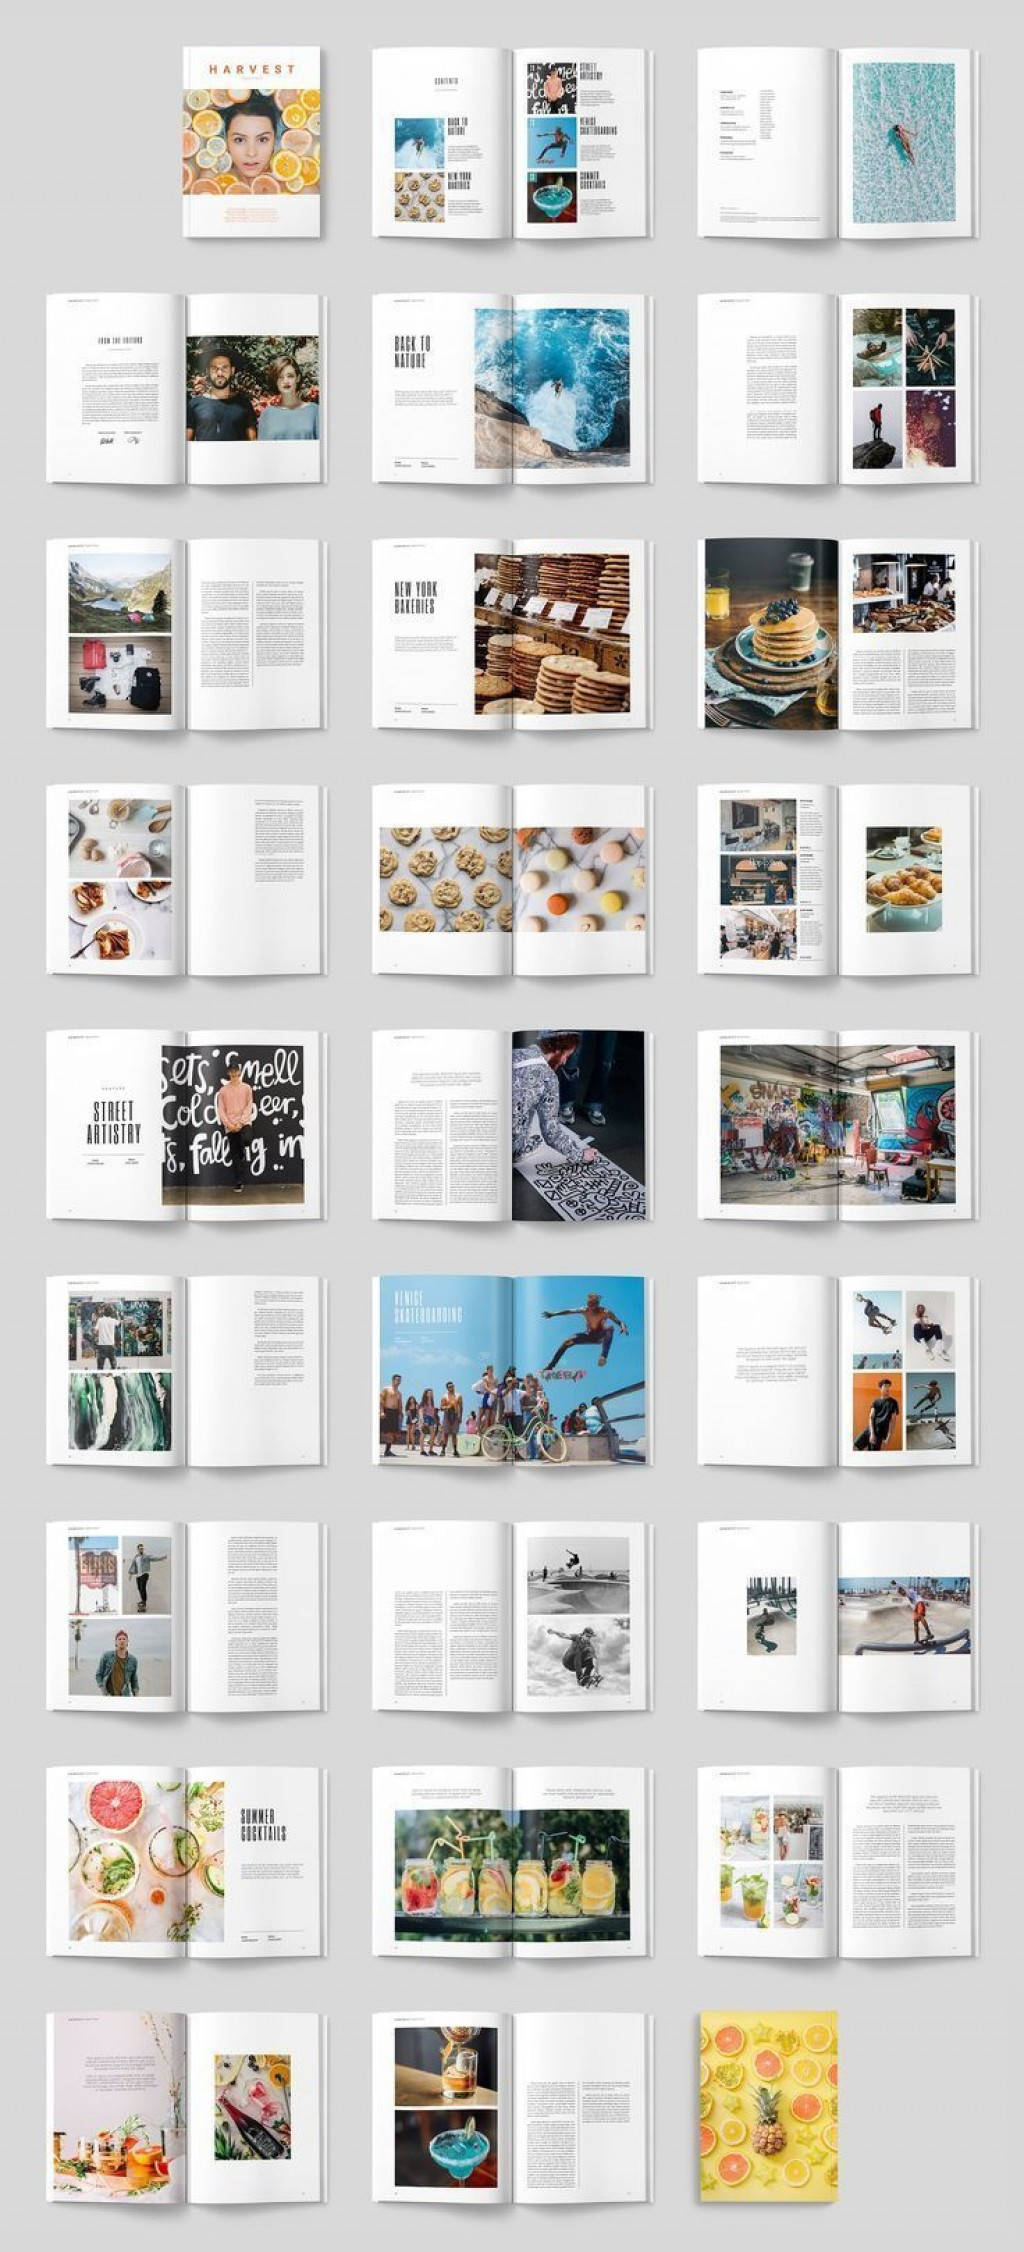 000 Astounding Indesign Magazine Template Free Design  Cover Download Indd Cs5Large